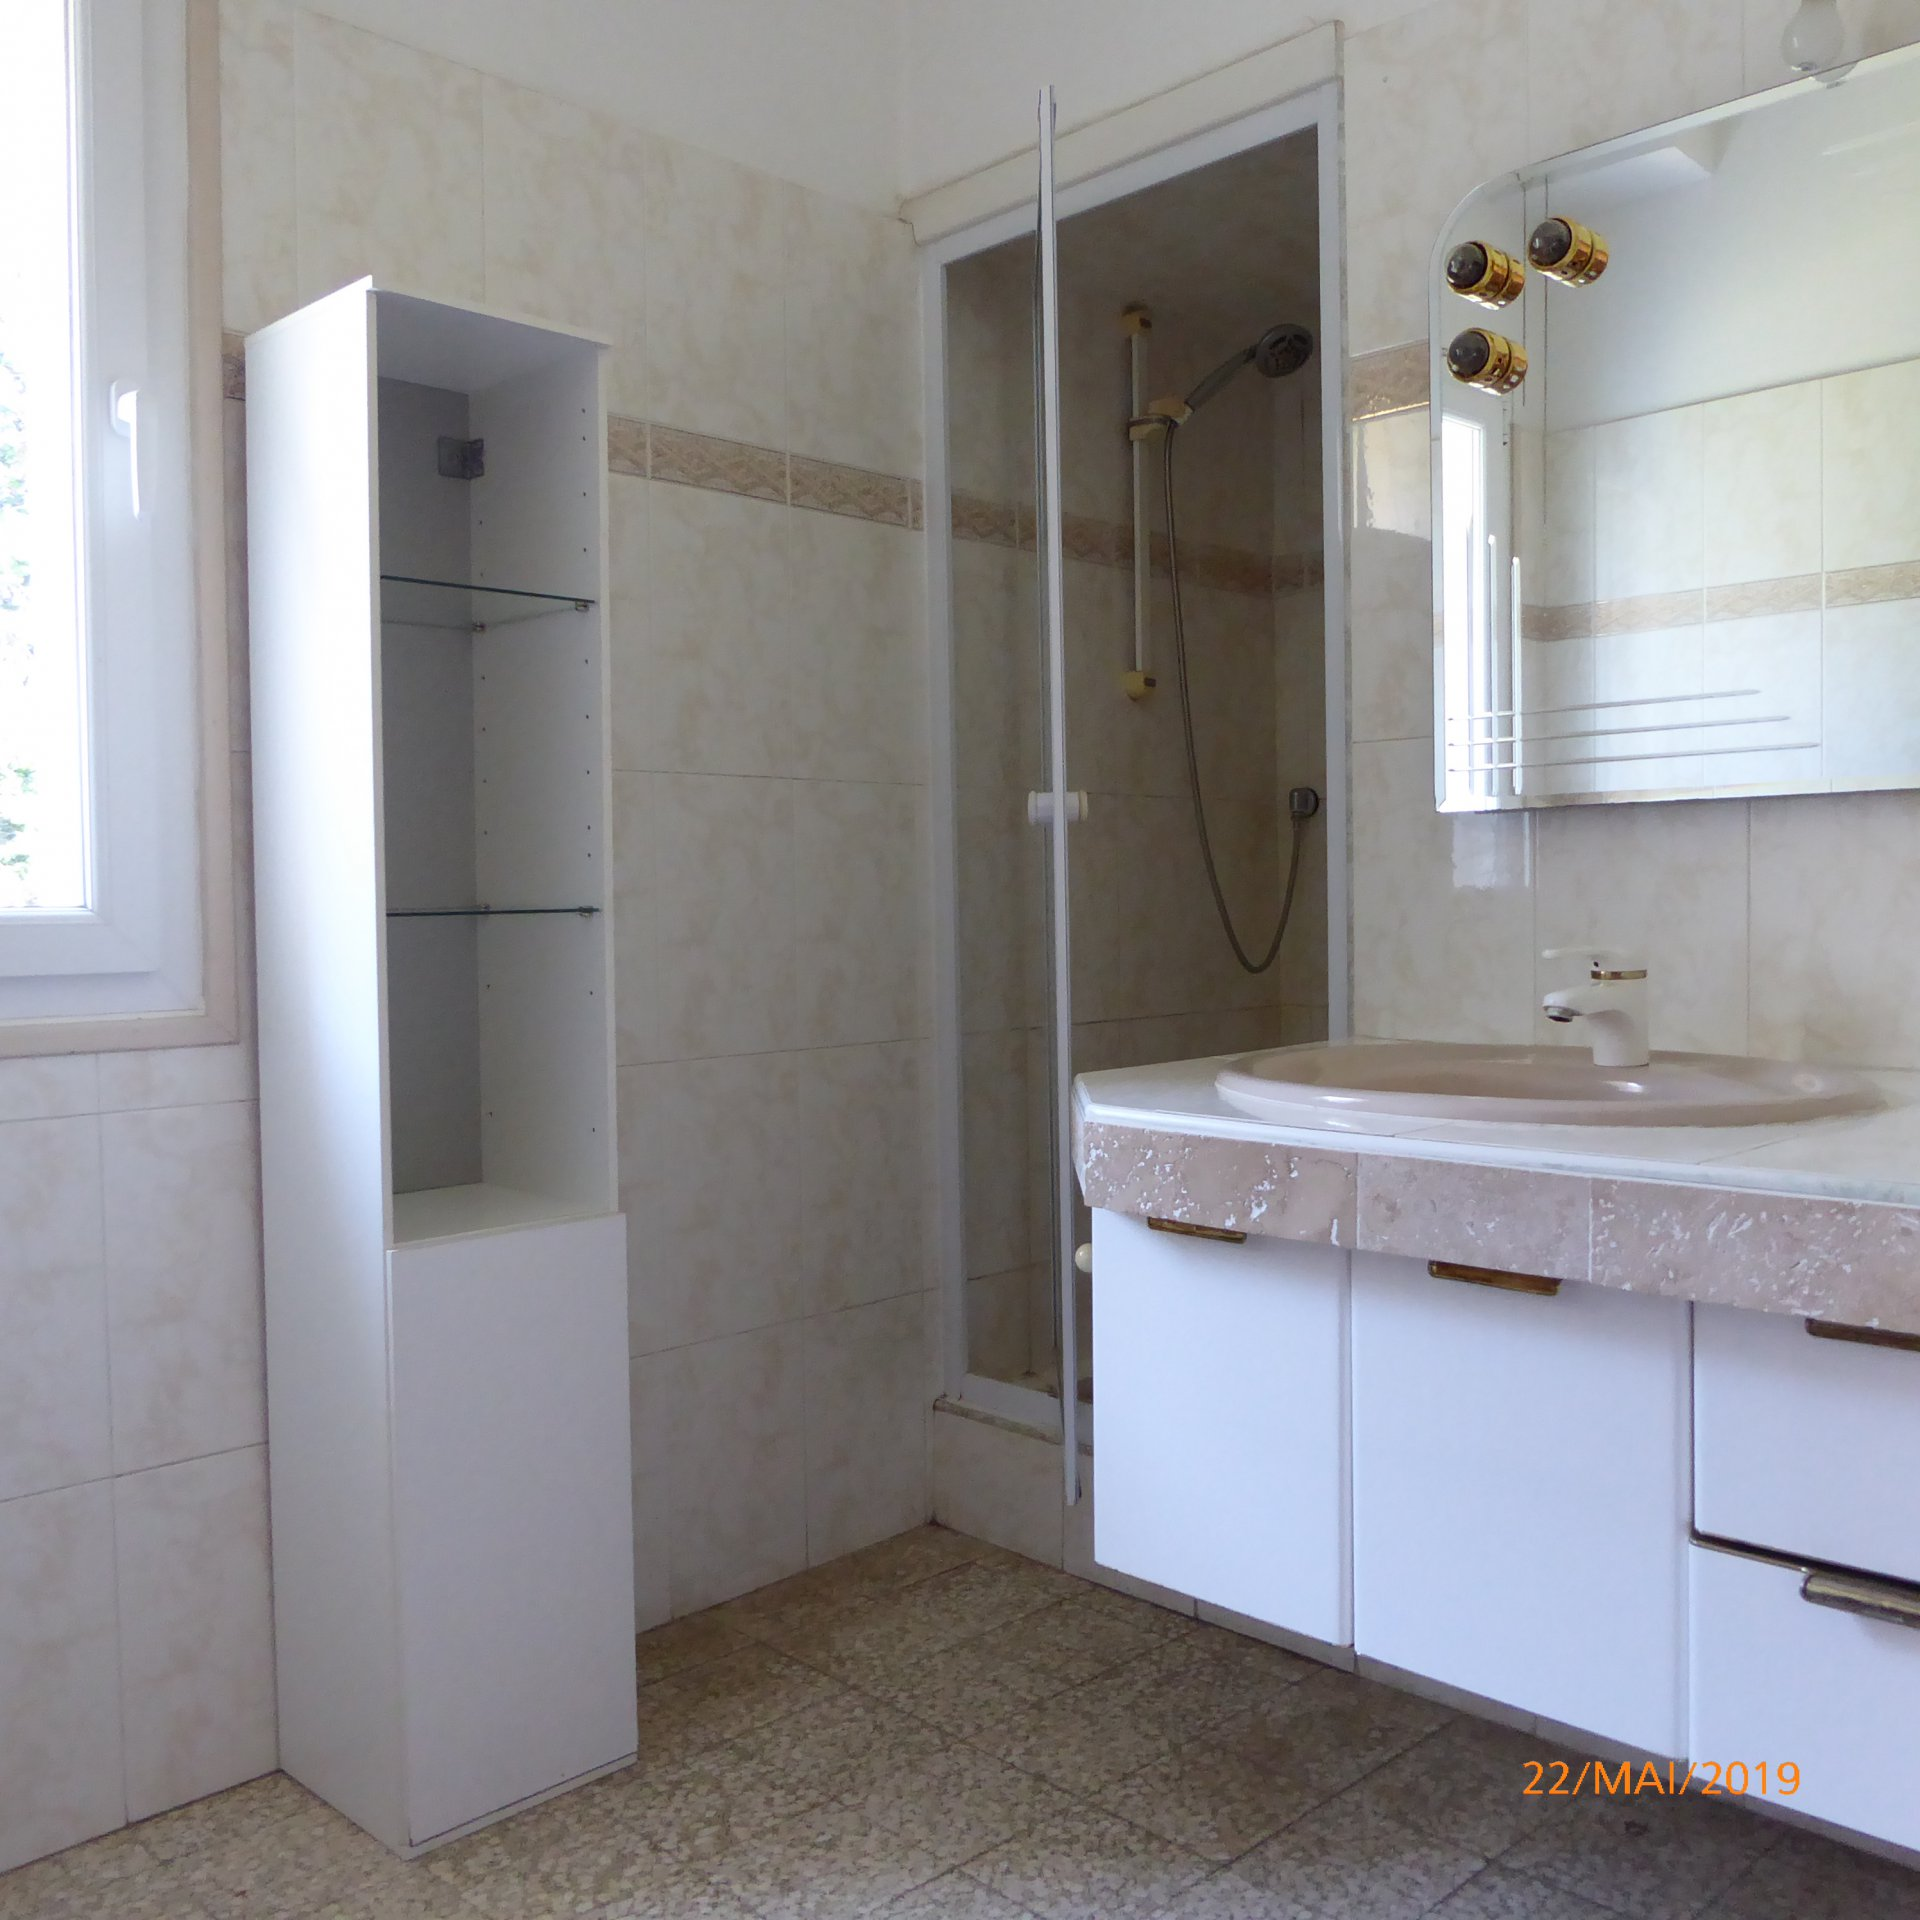 In the countryside, without any nuisance, nice farmhouse adjoining land with 5 bedrooms, a kitchen